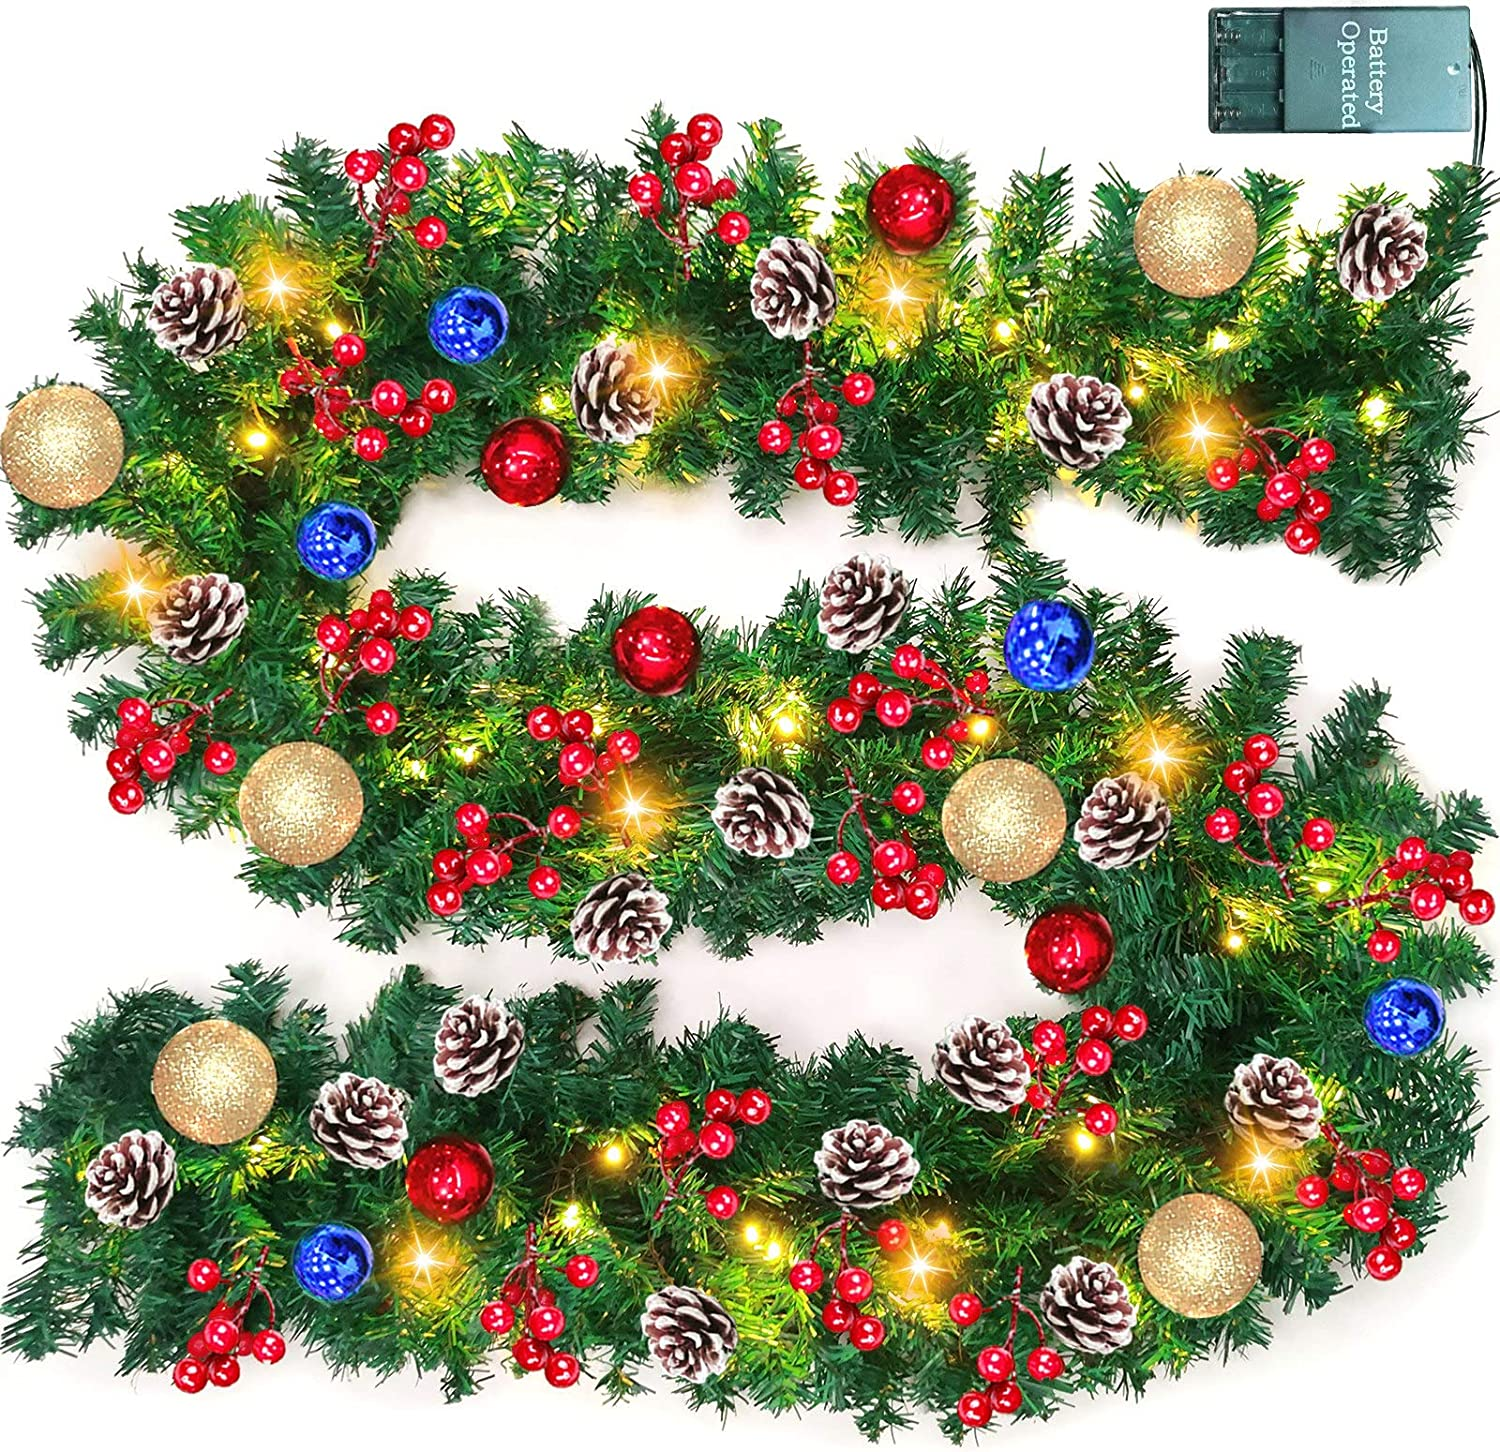 TURNMEON 9 FT Christmas Garland Decor with Lights Glitter Ball Ornaments, Battery Operated Xmas Garland Wreath with 280 Thick Branch 90 Red Berry Pine Cone,Indoor Outdoor Home Christmas Decor (Gold)